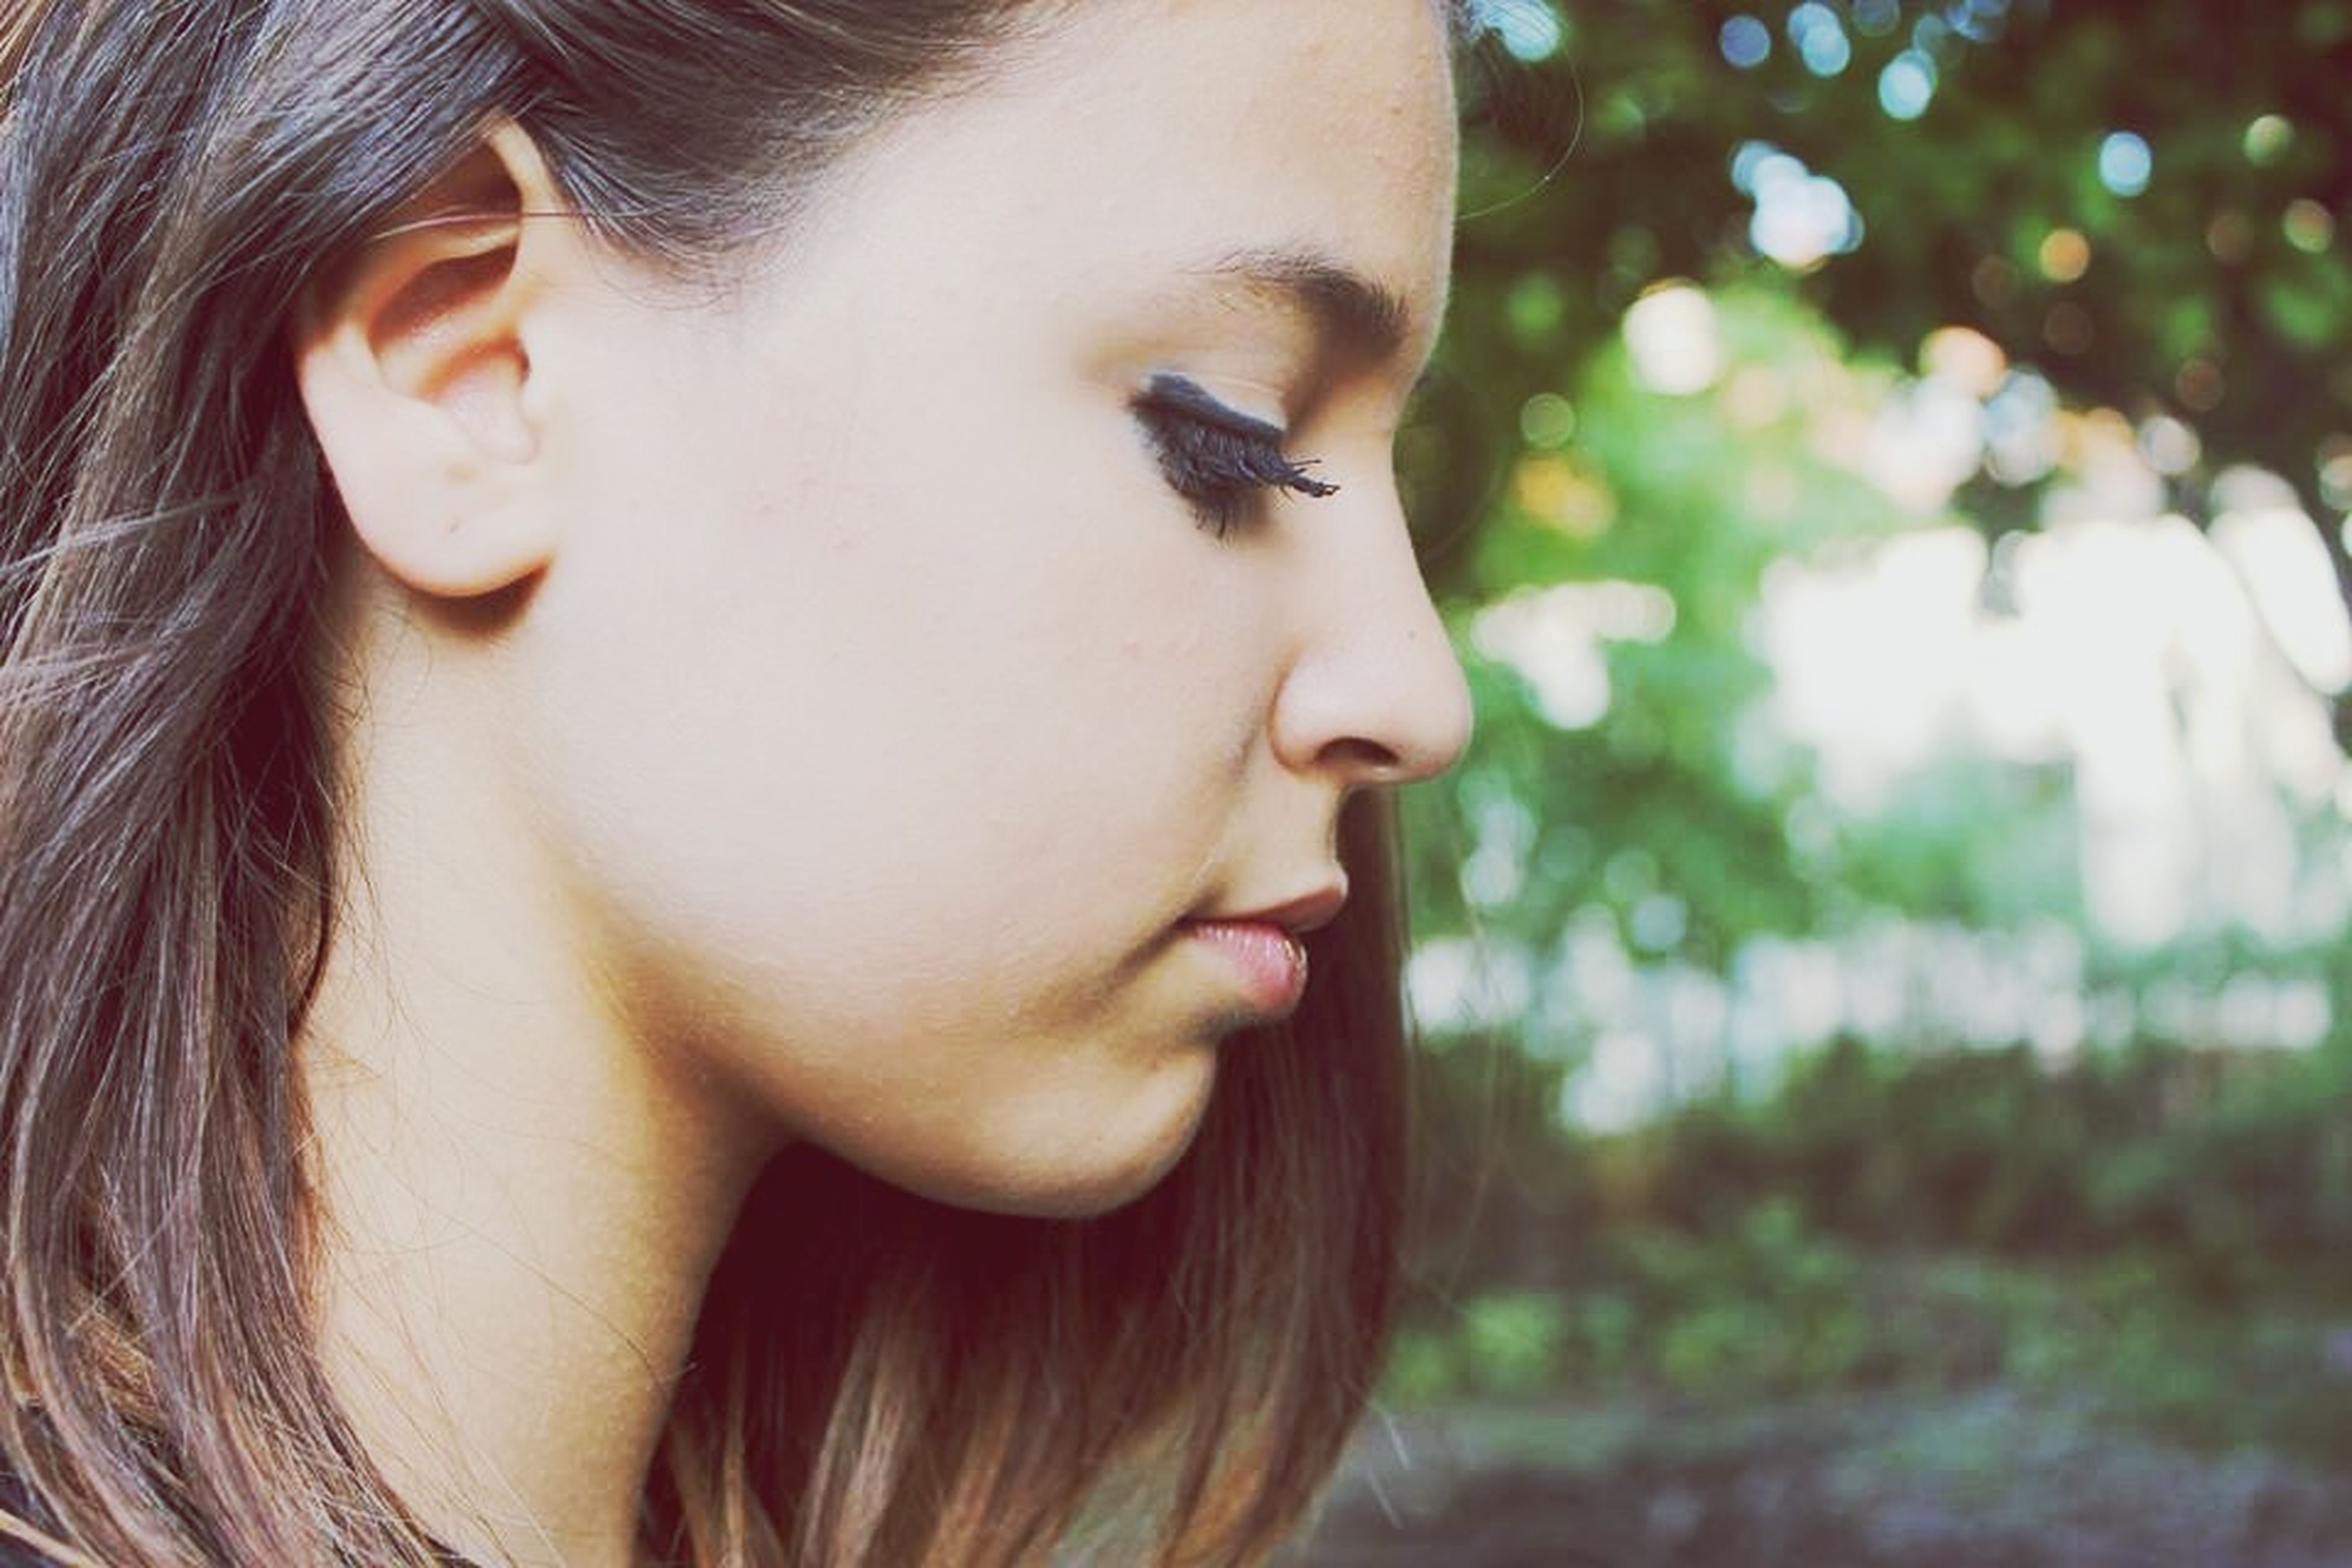 headshot, person, young women, young adult, close-up, long hair, looking at camera, portrait, lifestyles, focus on foreground, human face, front view, head and shoulders, leisure activity, contemplation, brown hair